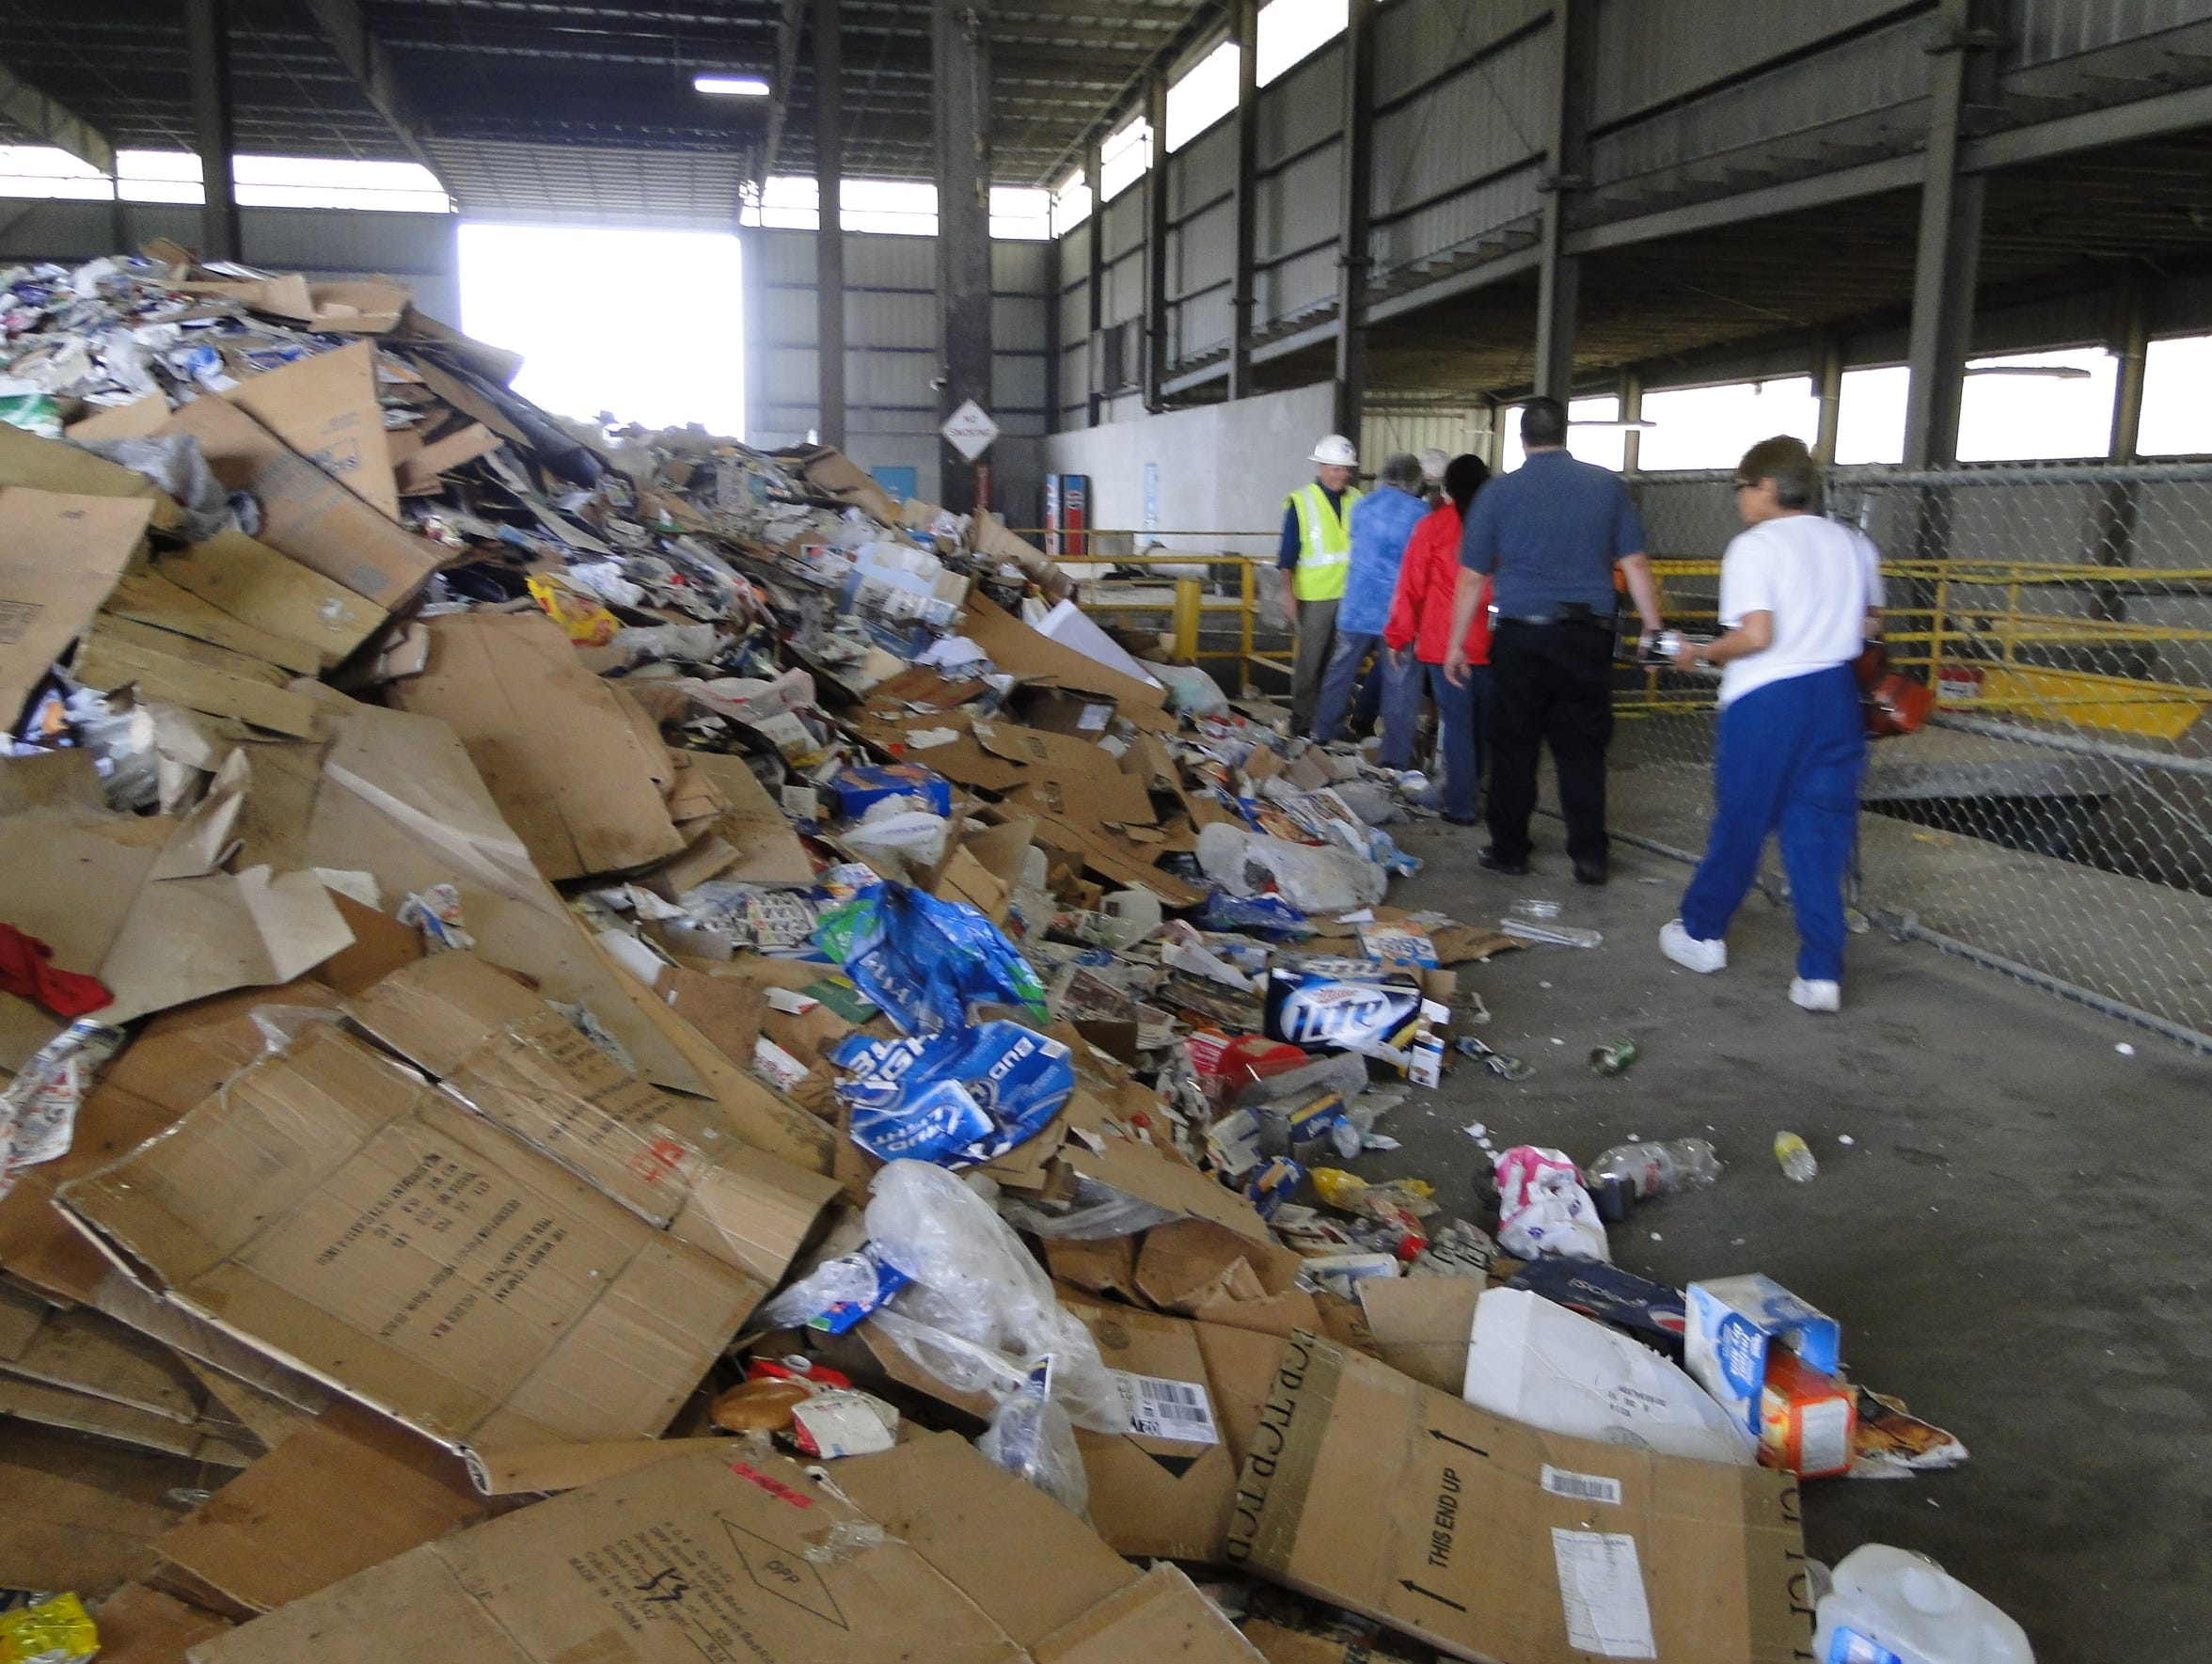 The recyclables market for paper products has stabilized. Patrick Peck, the area's solid waste director, said there was a time when it looked like newspapers and chipboard (cereal boxes) might be in danger, but that is no longer the case.